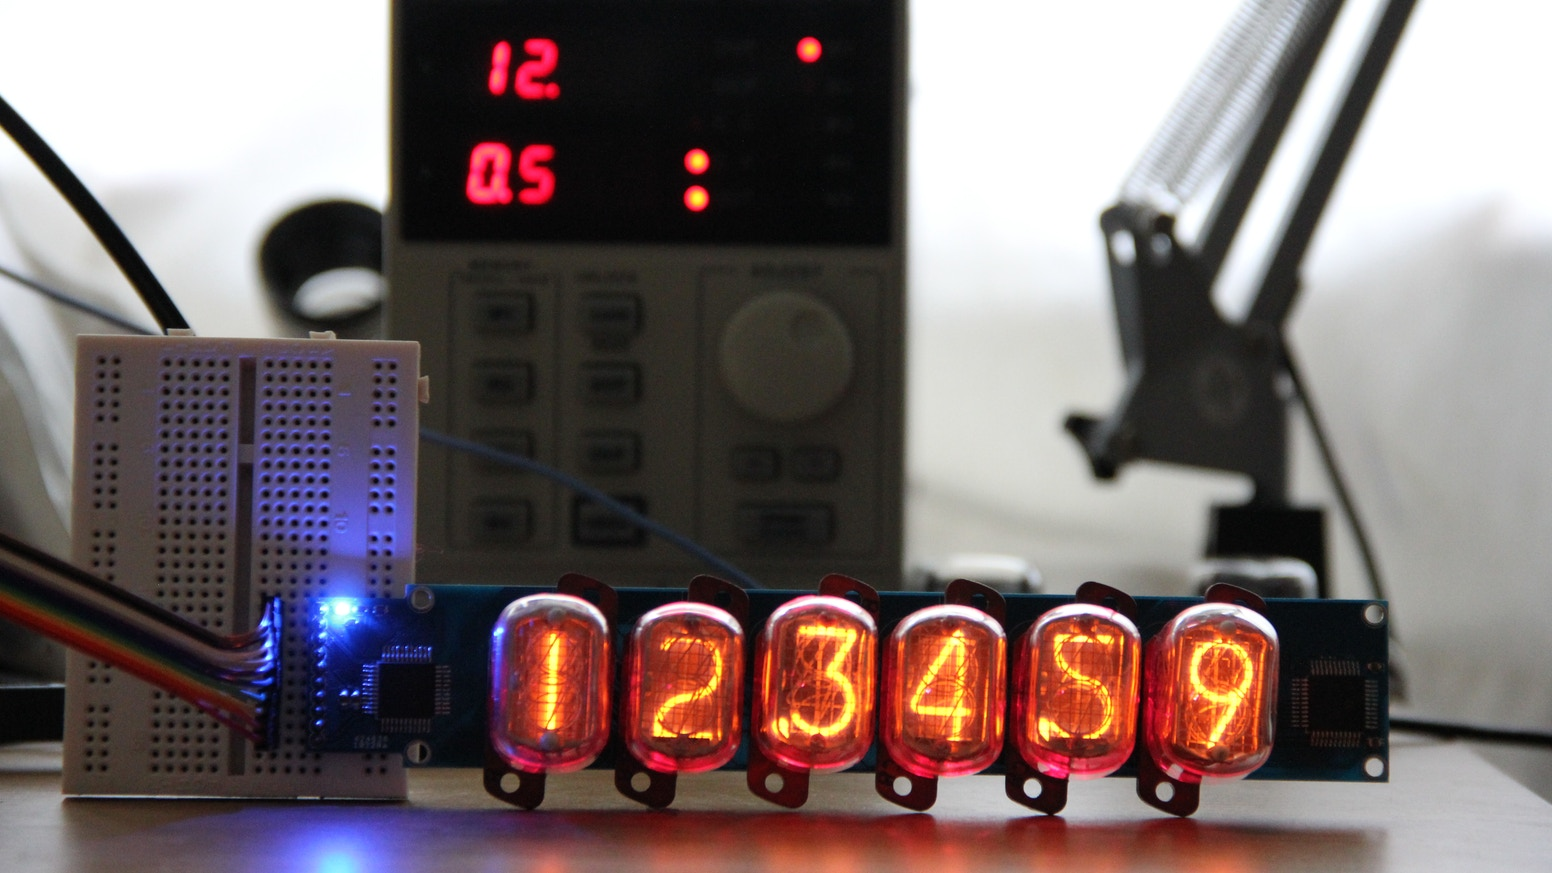 A simple way to implement a 6-digit RGB backlit Nixie Tube display into any project, with an accompanying Arduino library.